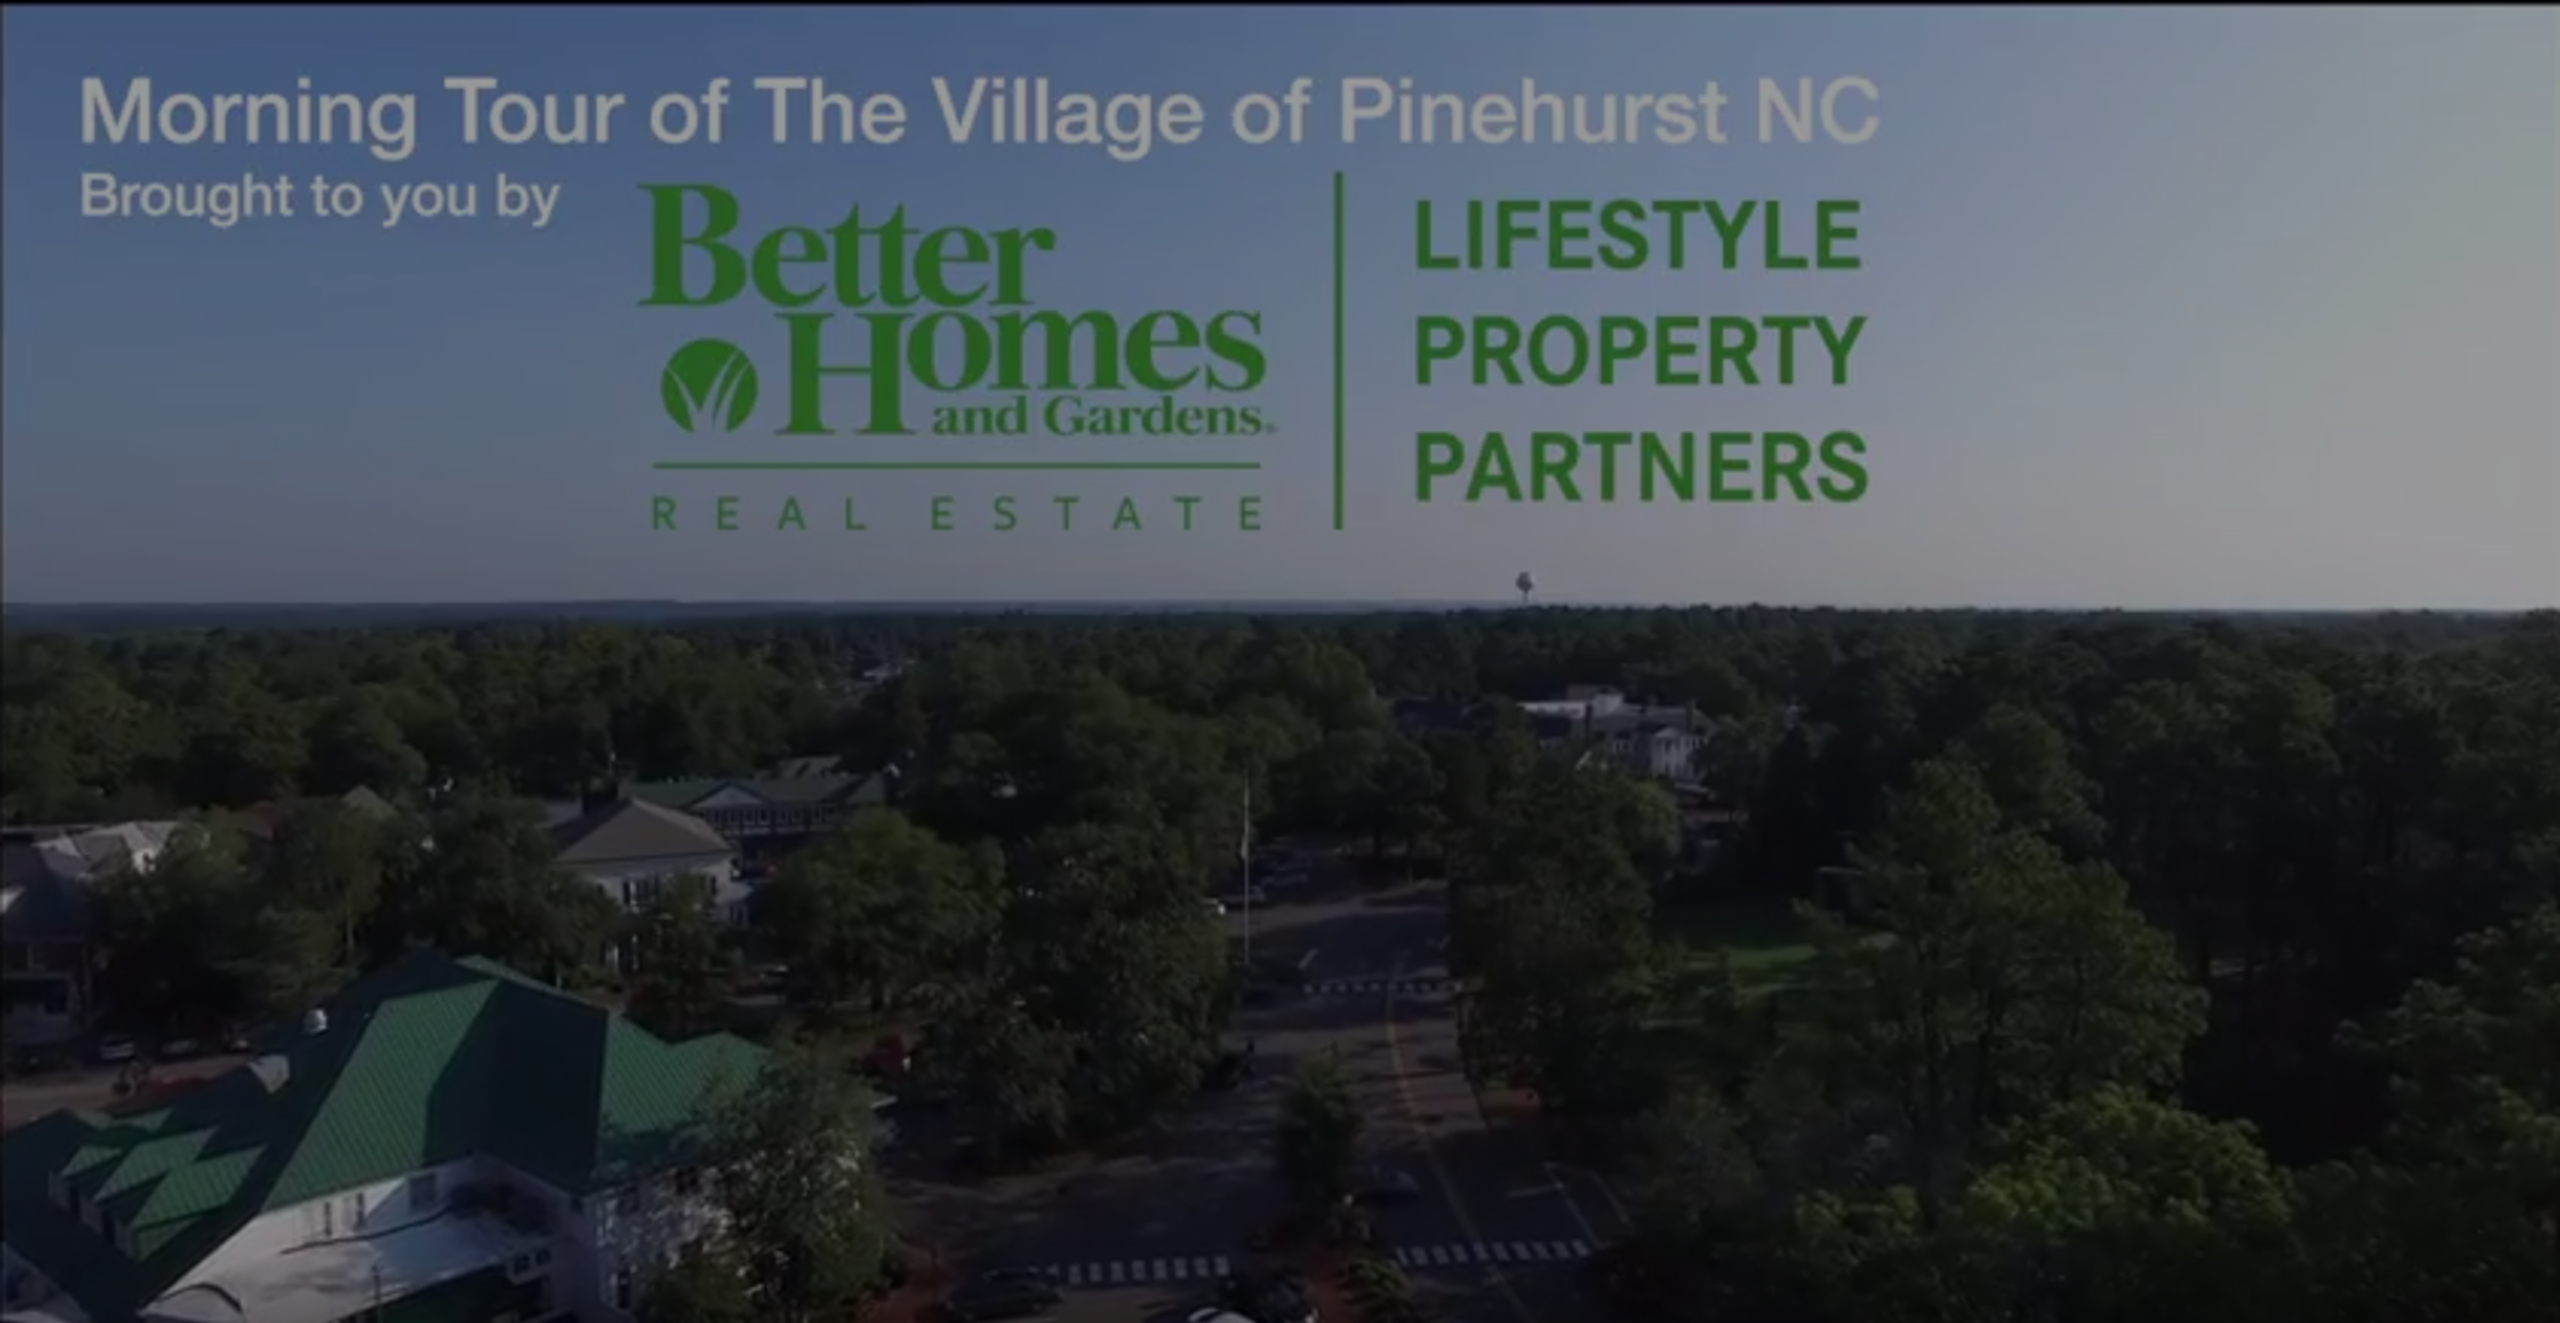 Tour of the Village of Pinehurst from the Sky